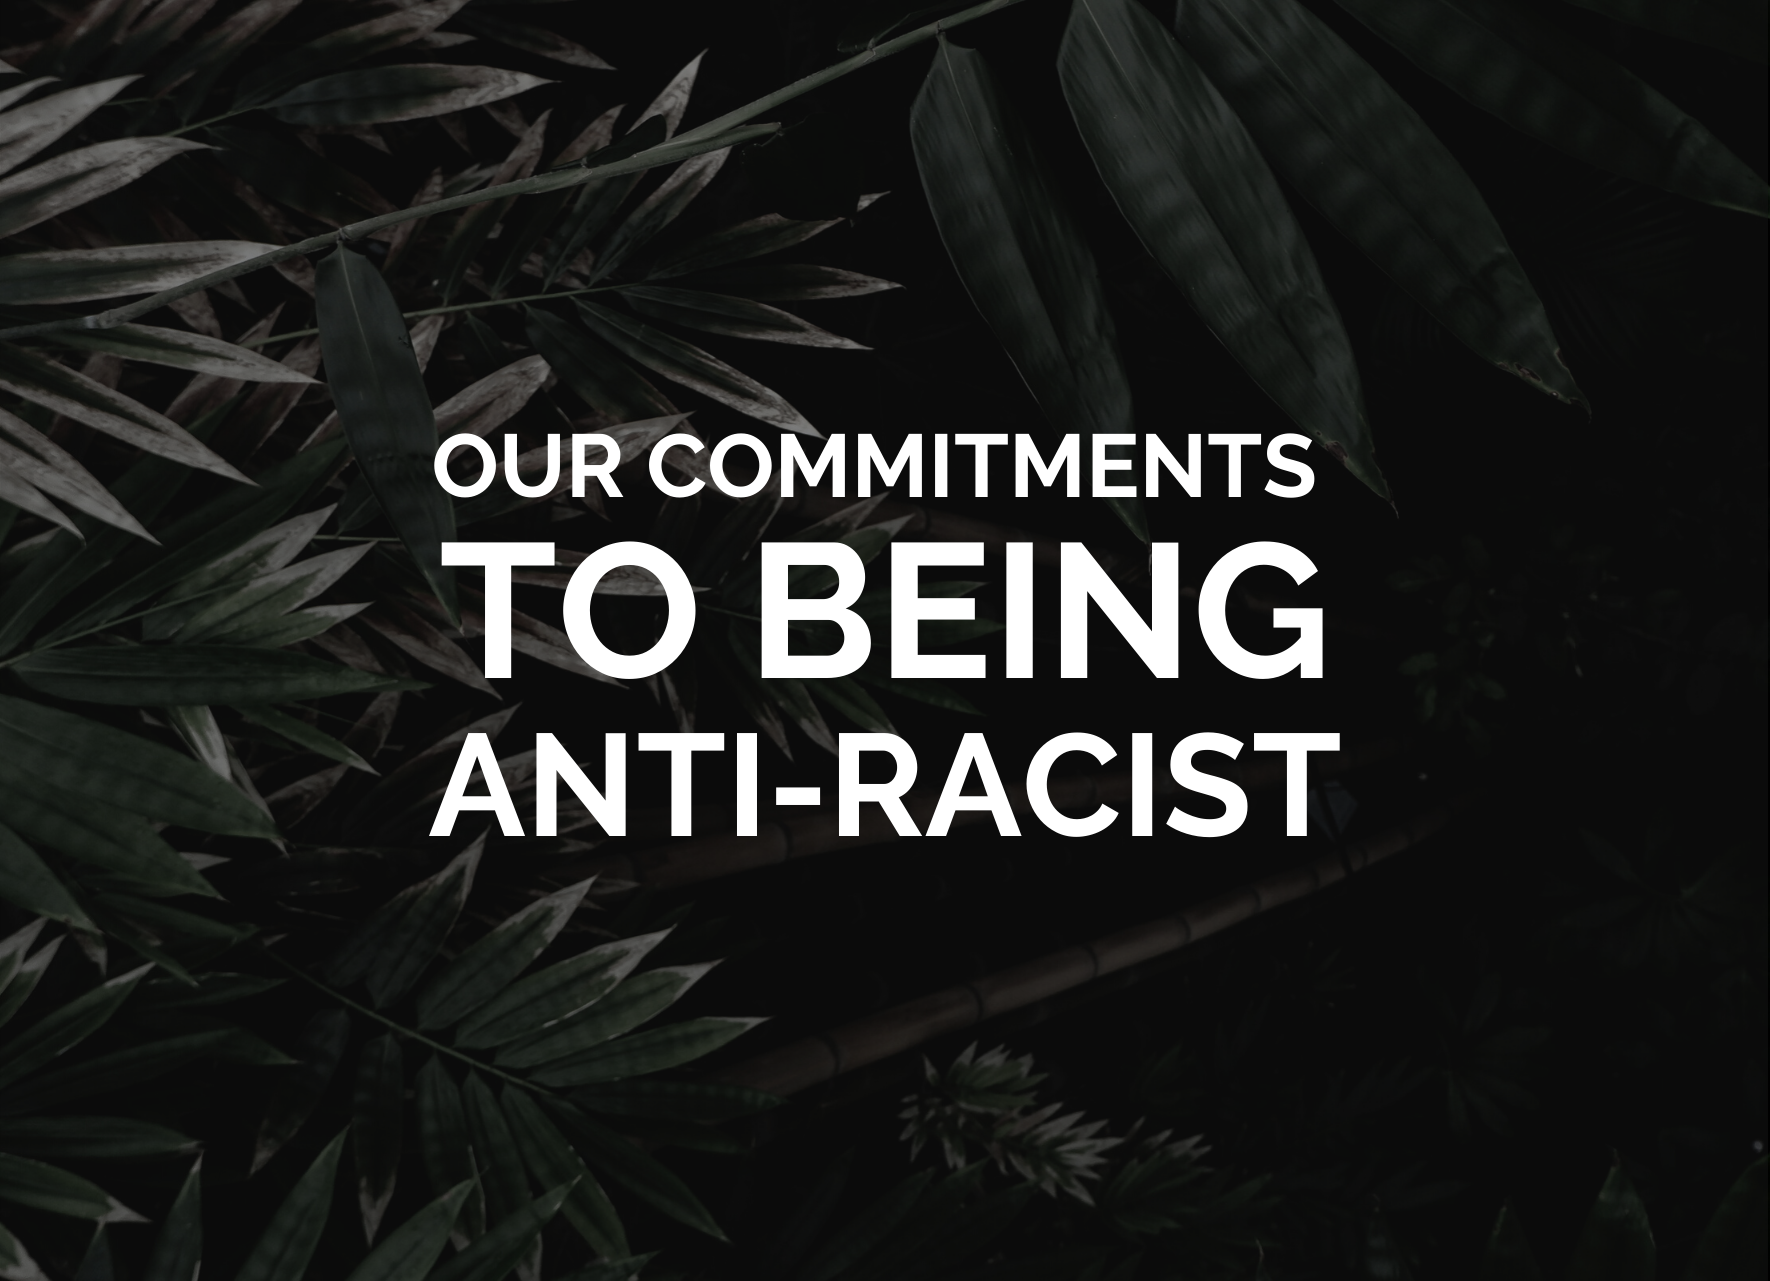 Our commitments to being anti-racist